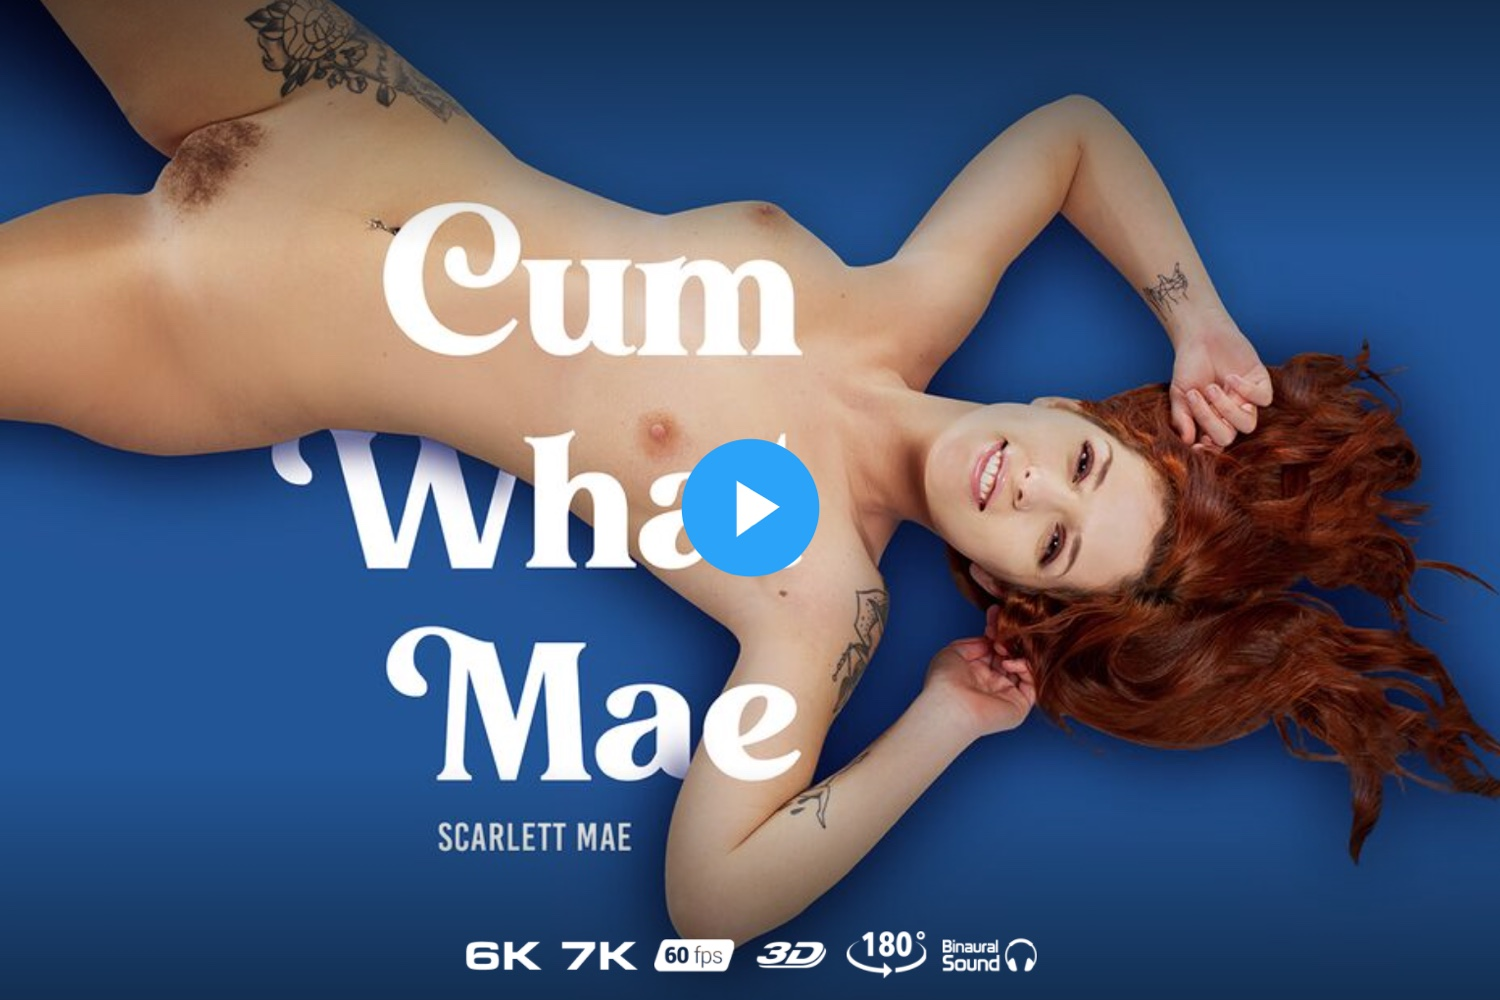 Cum What Mae - Scarlett Mae VR Porn - Scarlett Mae Virtual Reality Porn